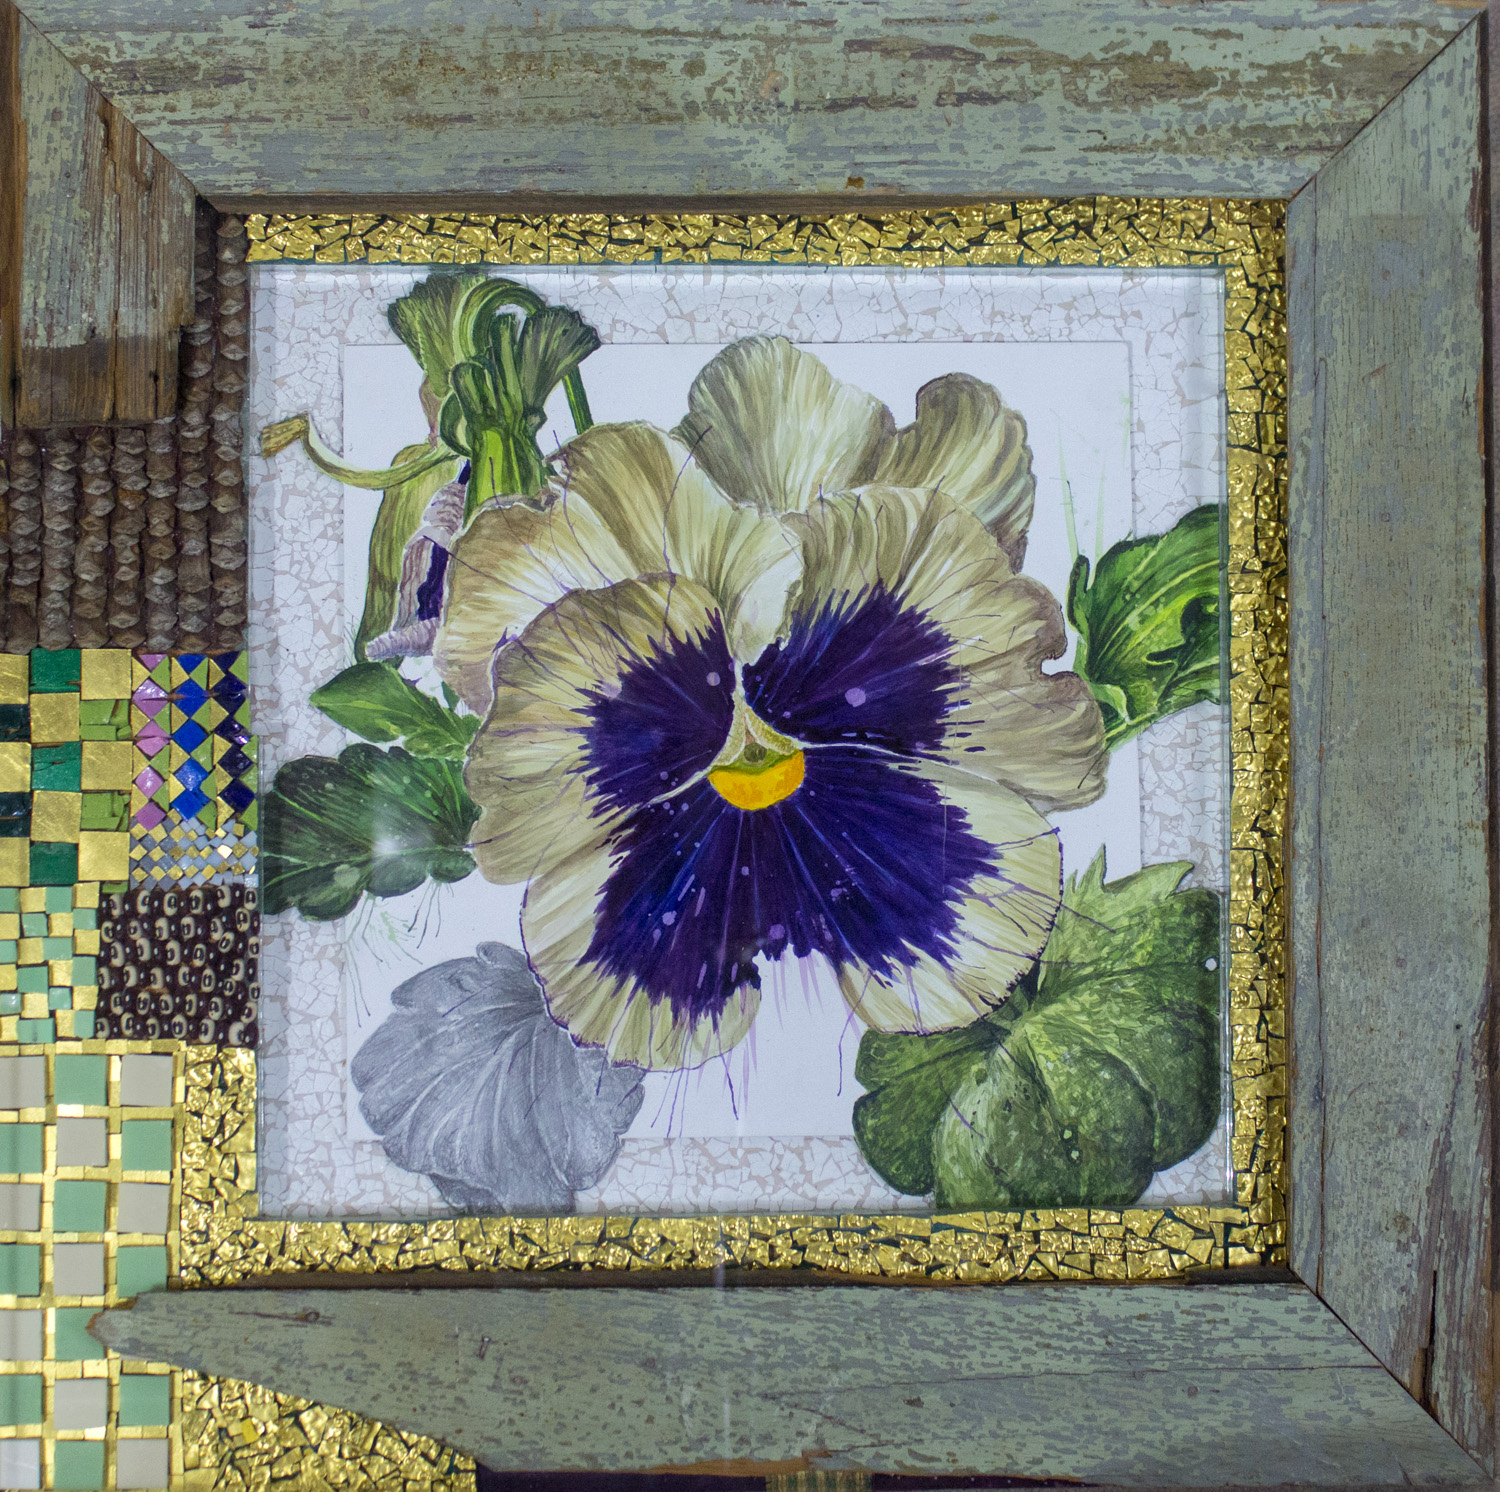 Talladega Pansy by Nall, Mixed Media